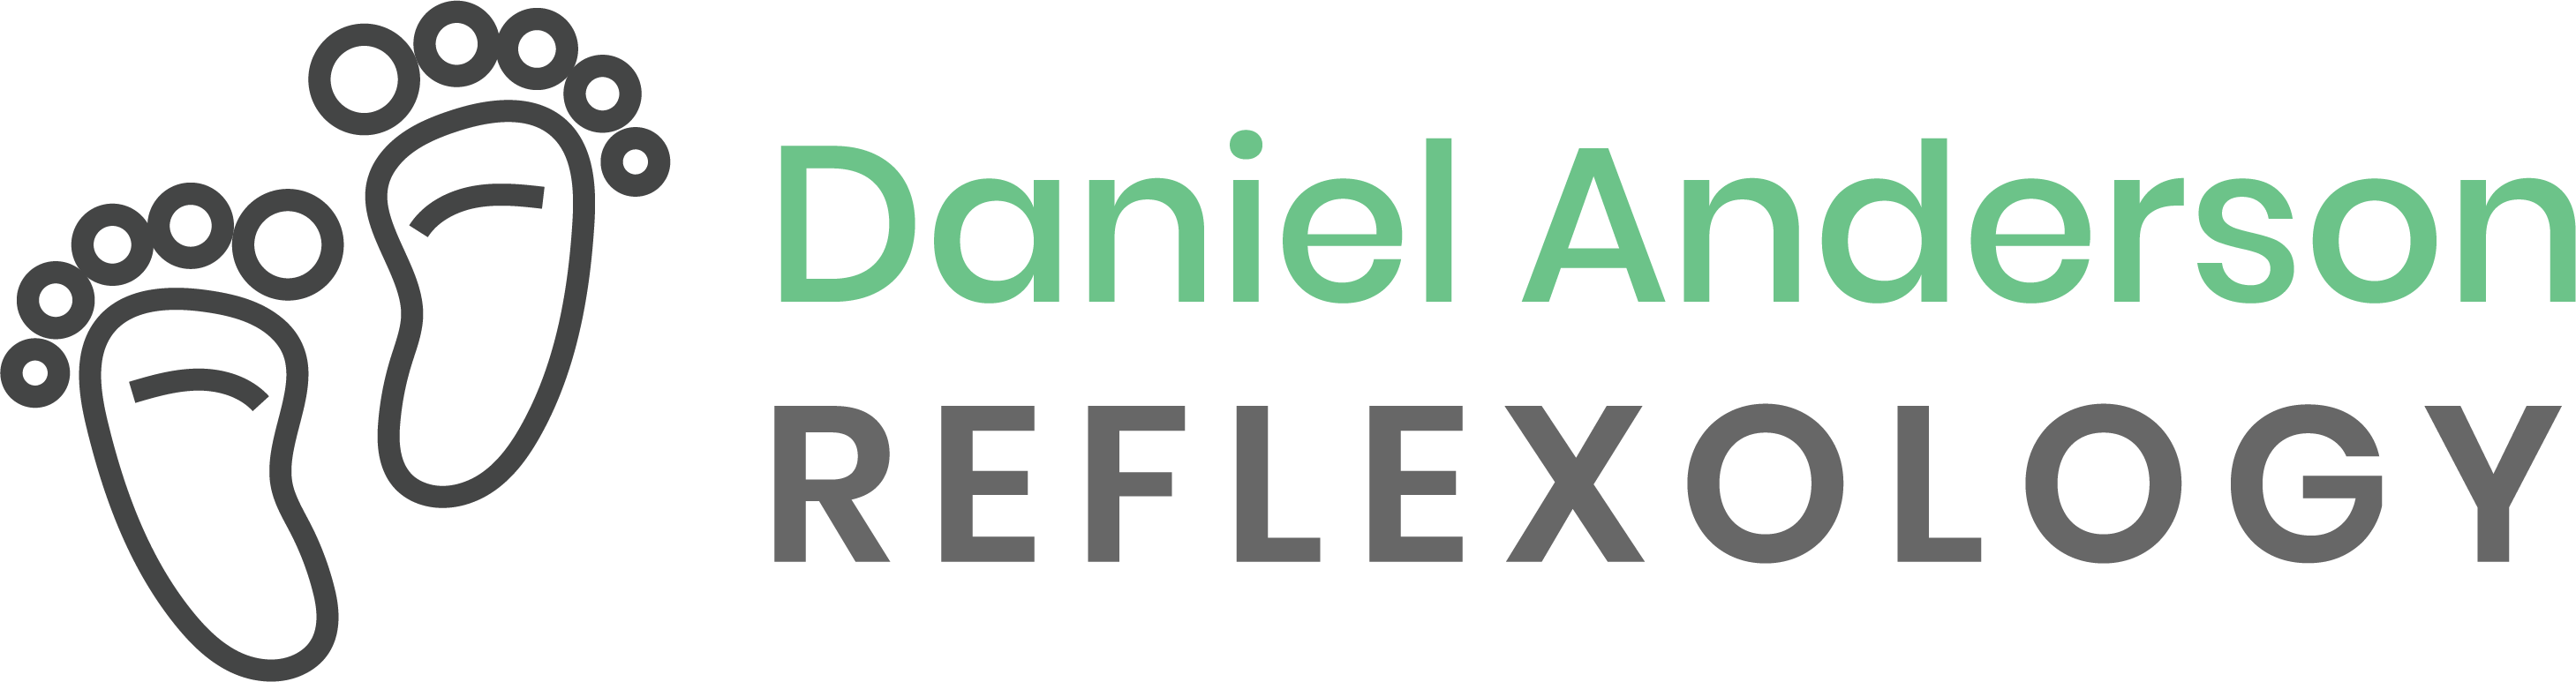 The Daniel Anderson Reflexology Logo